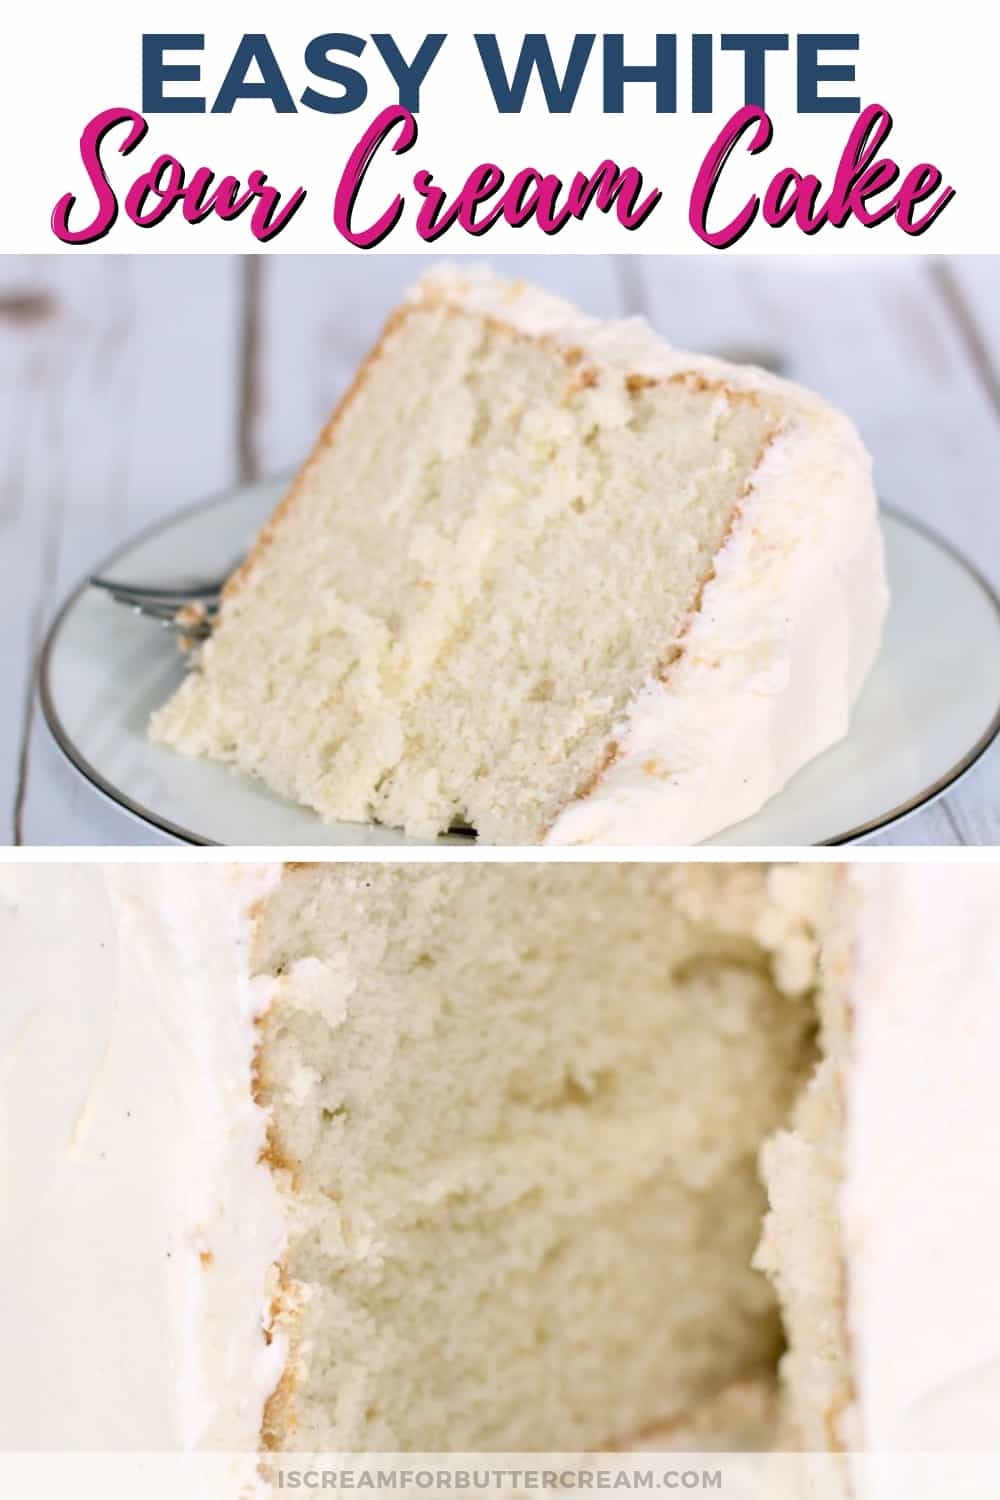 Easy White Sour Cream Cake Recipe In 2020 Sour Cream Cake Savoury Cake Cake